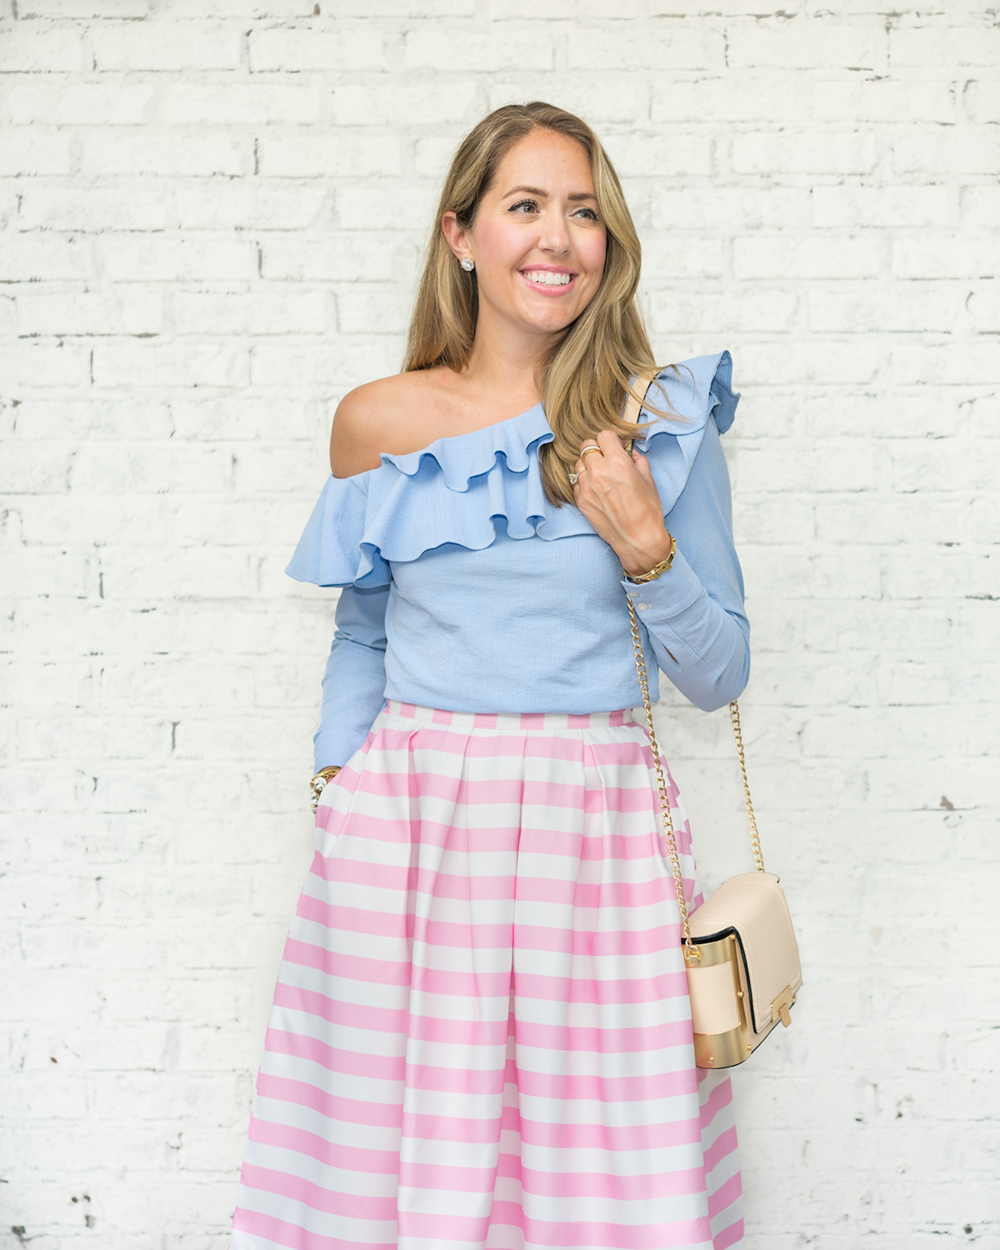 Blue ruffle top with pink stripe skirt